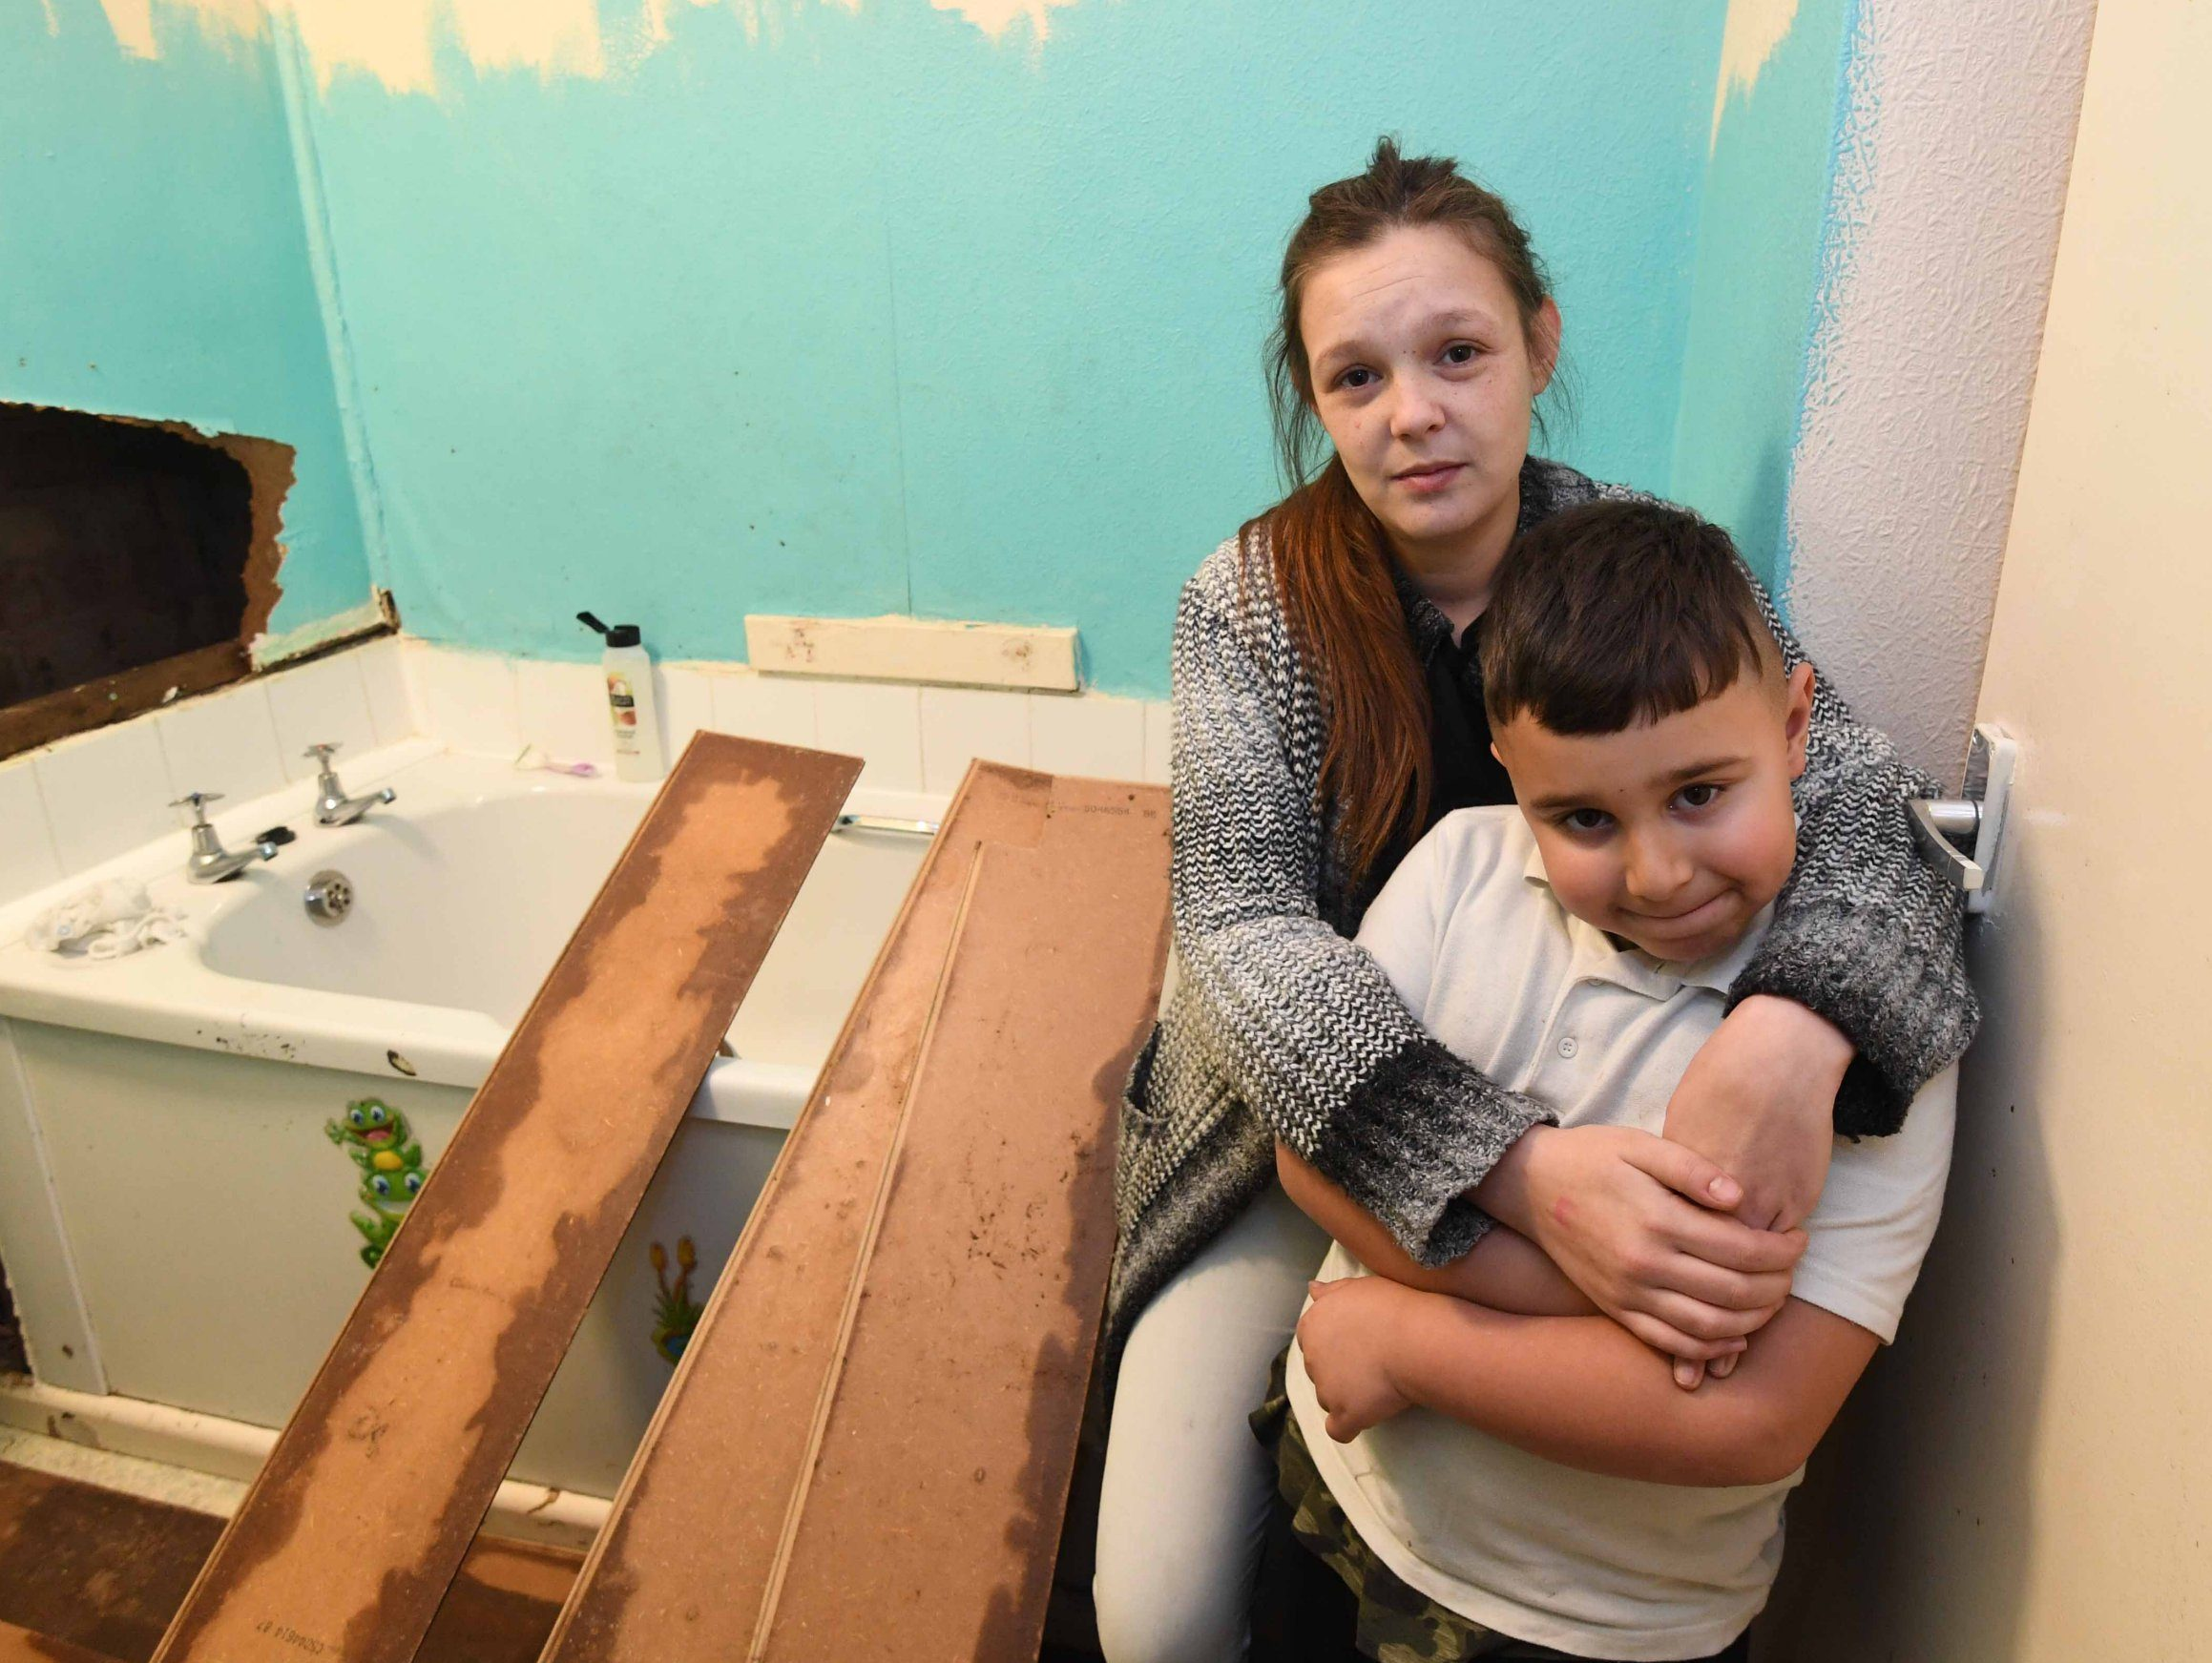 Pictured Charlene Lewis with son Kameron aged 7 is having problems with the raw sewage waste from the flat above her running into the bathroom sink and bath at the set flats in Hurst Lane, Castle Bromwich.